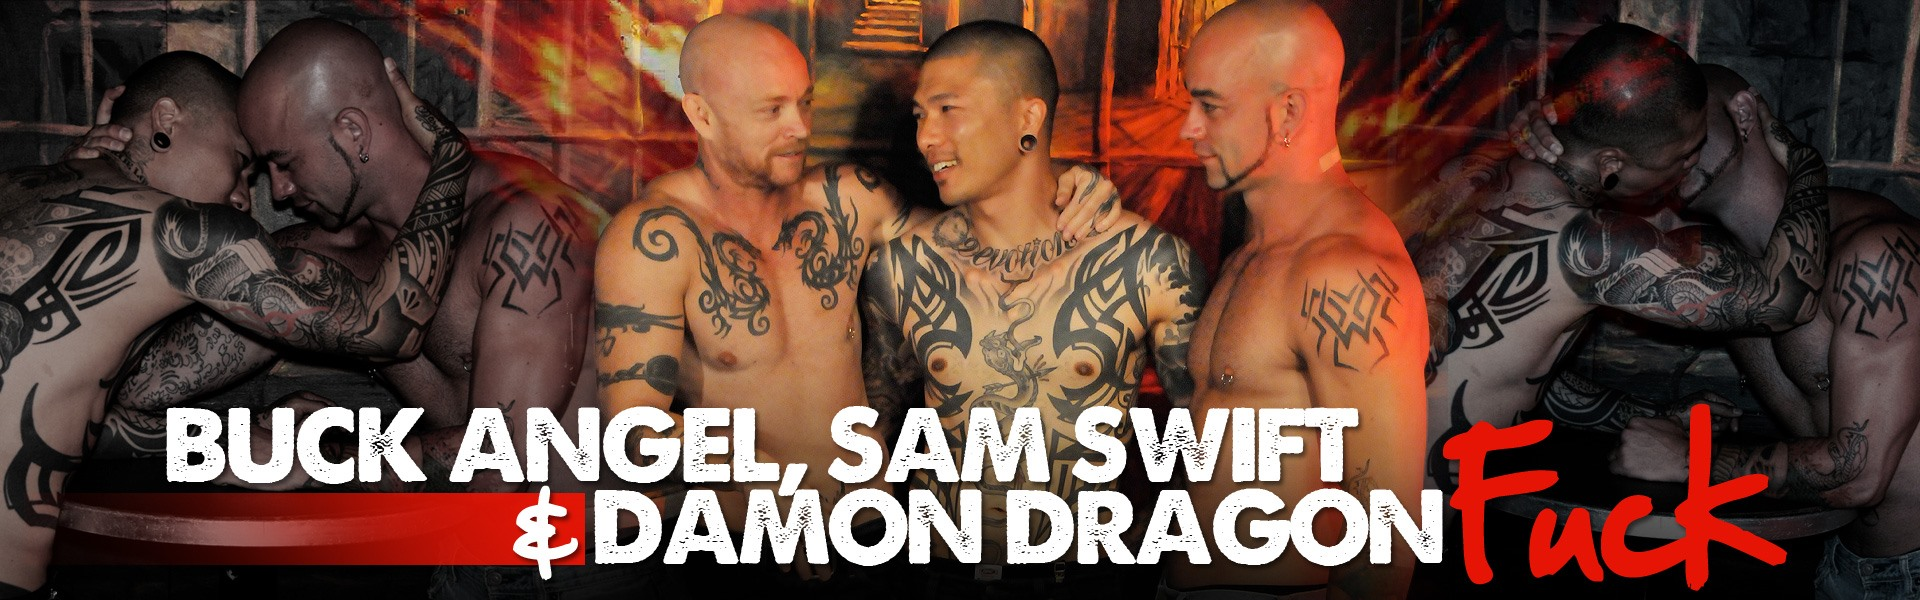 Buck Angel, Sam Swift & Damon Dragon Fuck